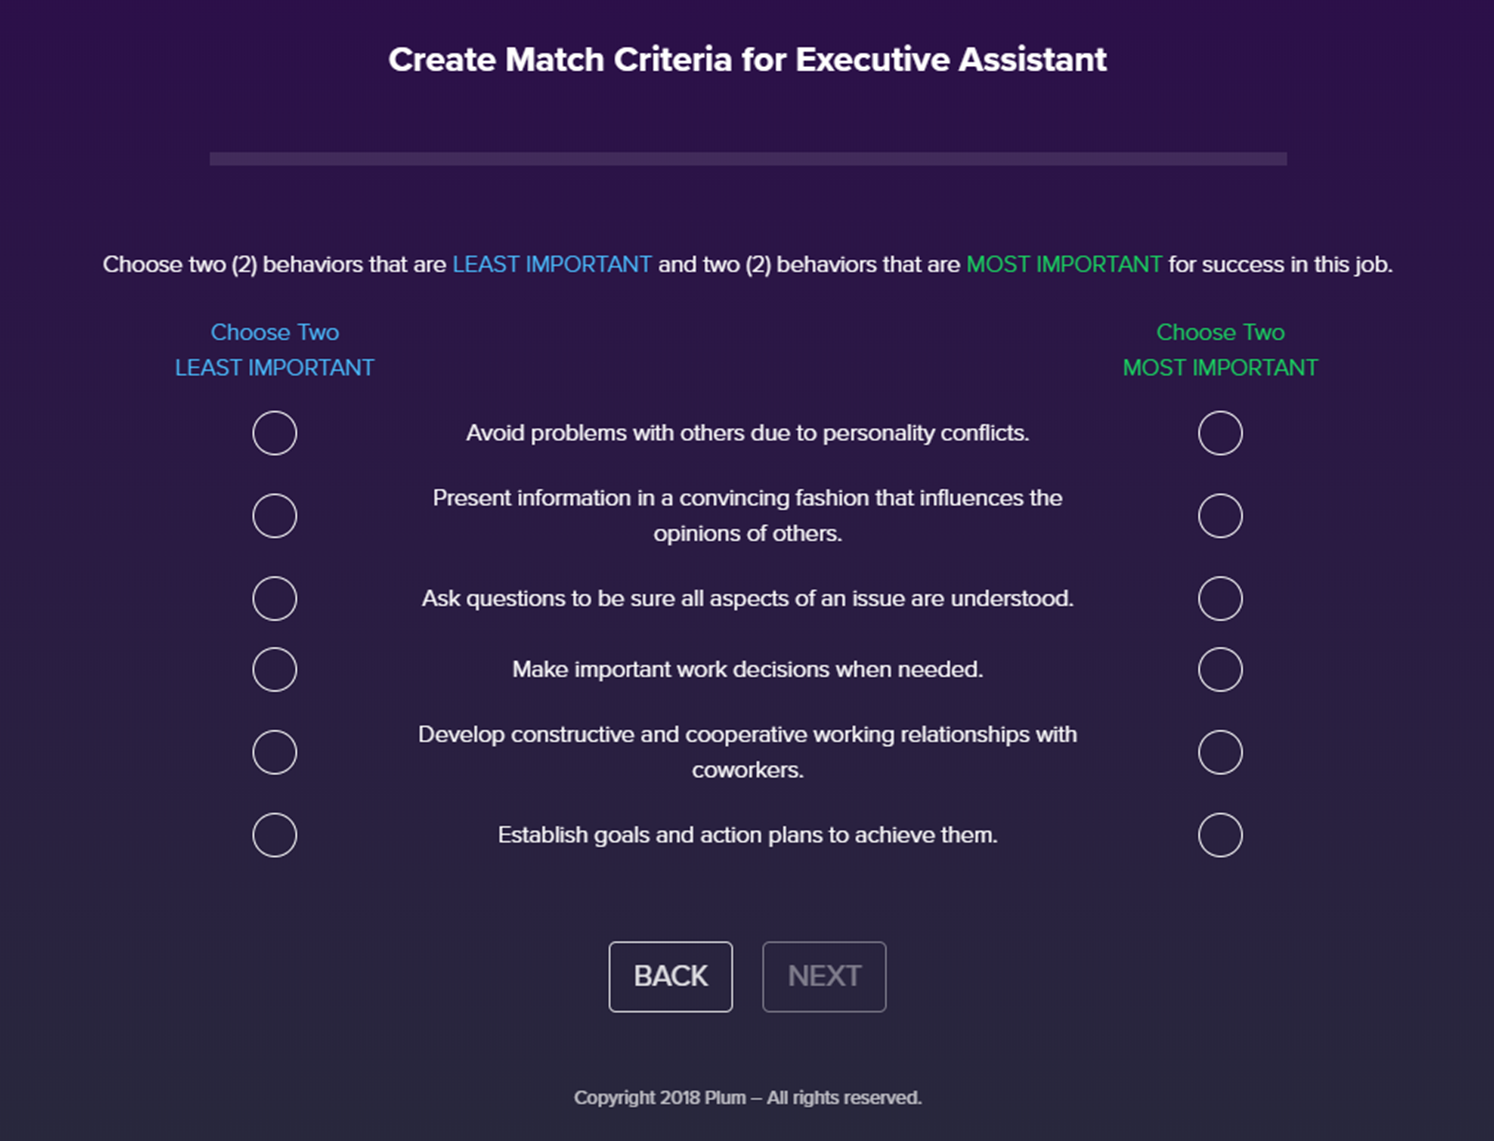 The Match Criteria Survey determines the talents needed for the role